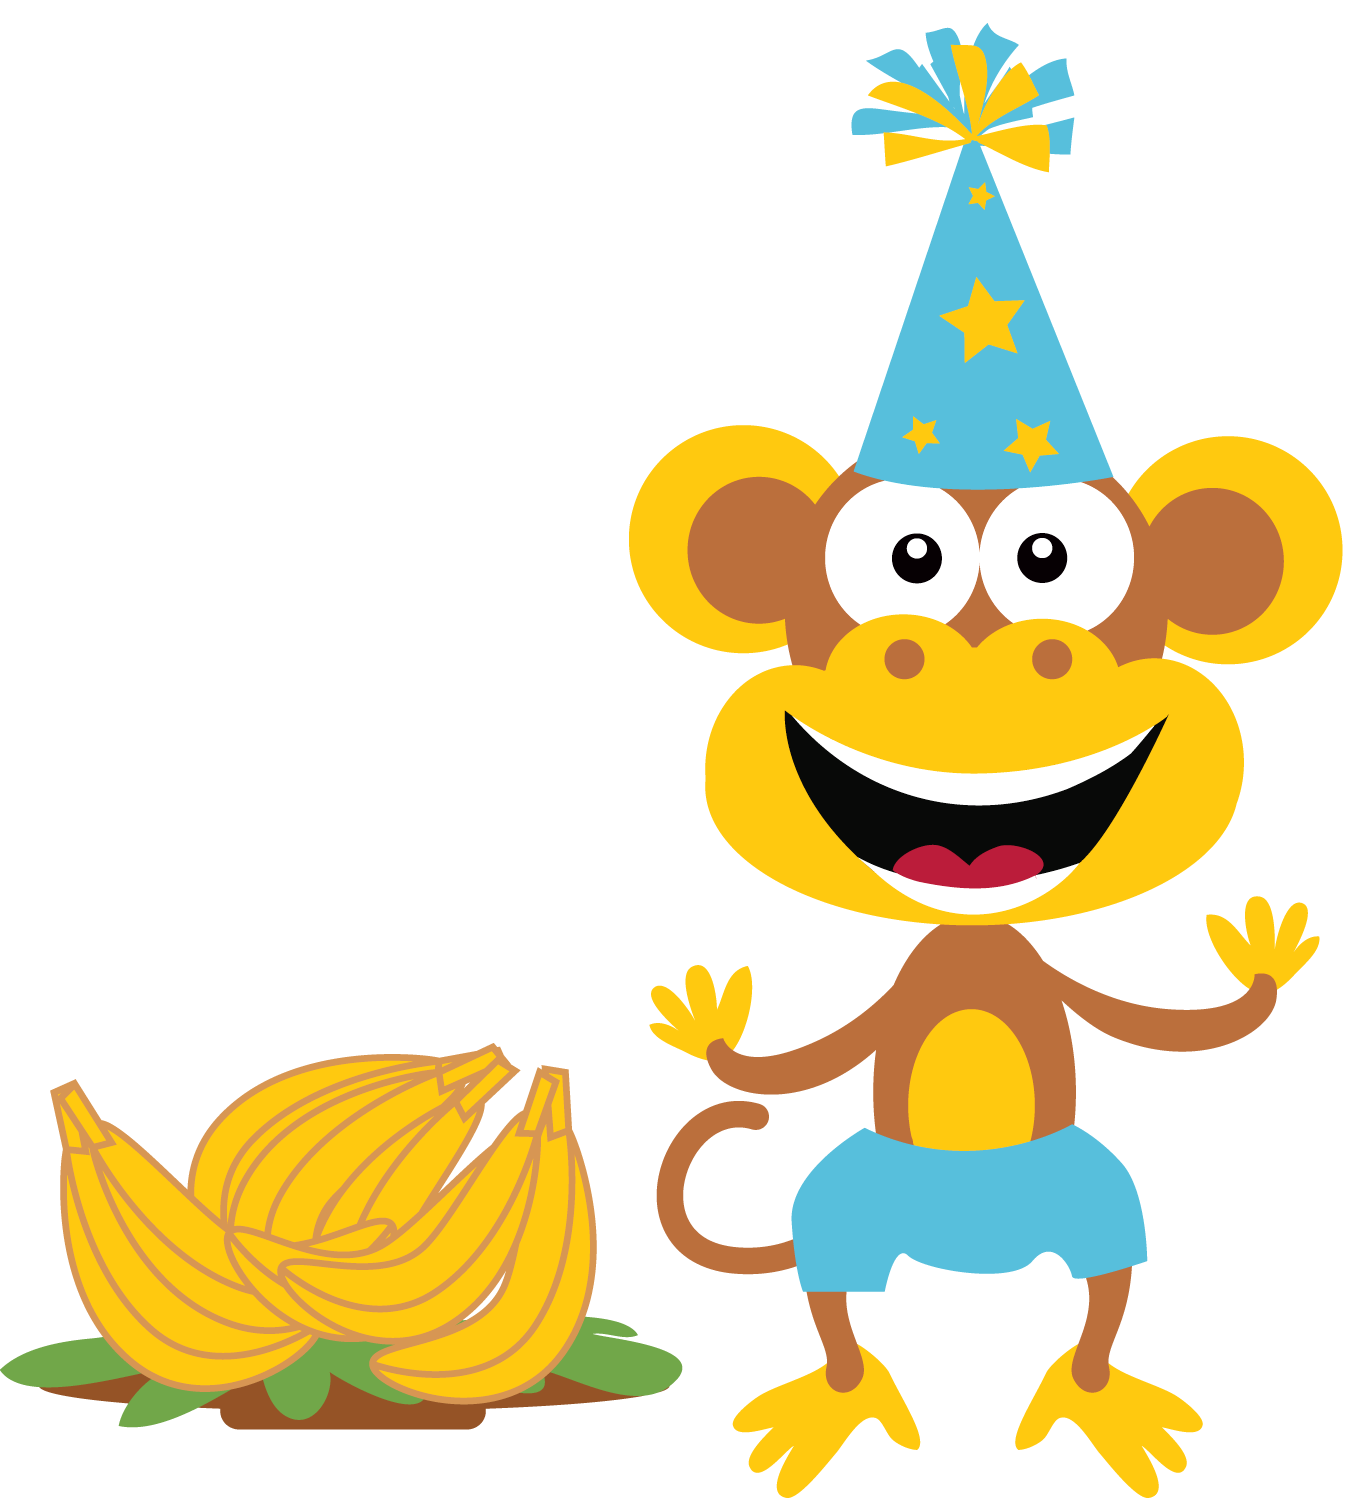 boy monkey clip art clipart panda free clipart images rh clipartpanda com clipart of monkey signing books clipart of money falling out of pocket